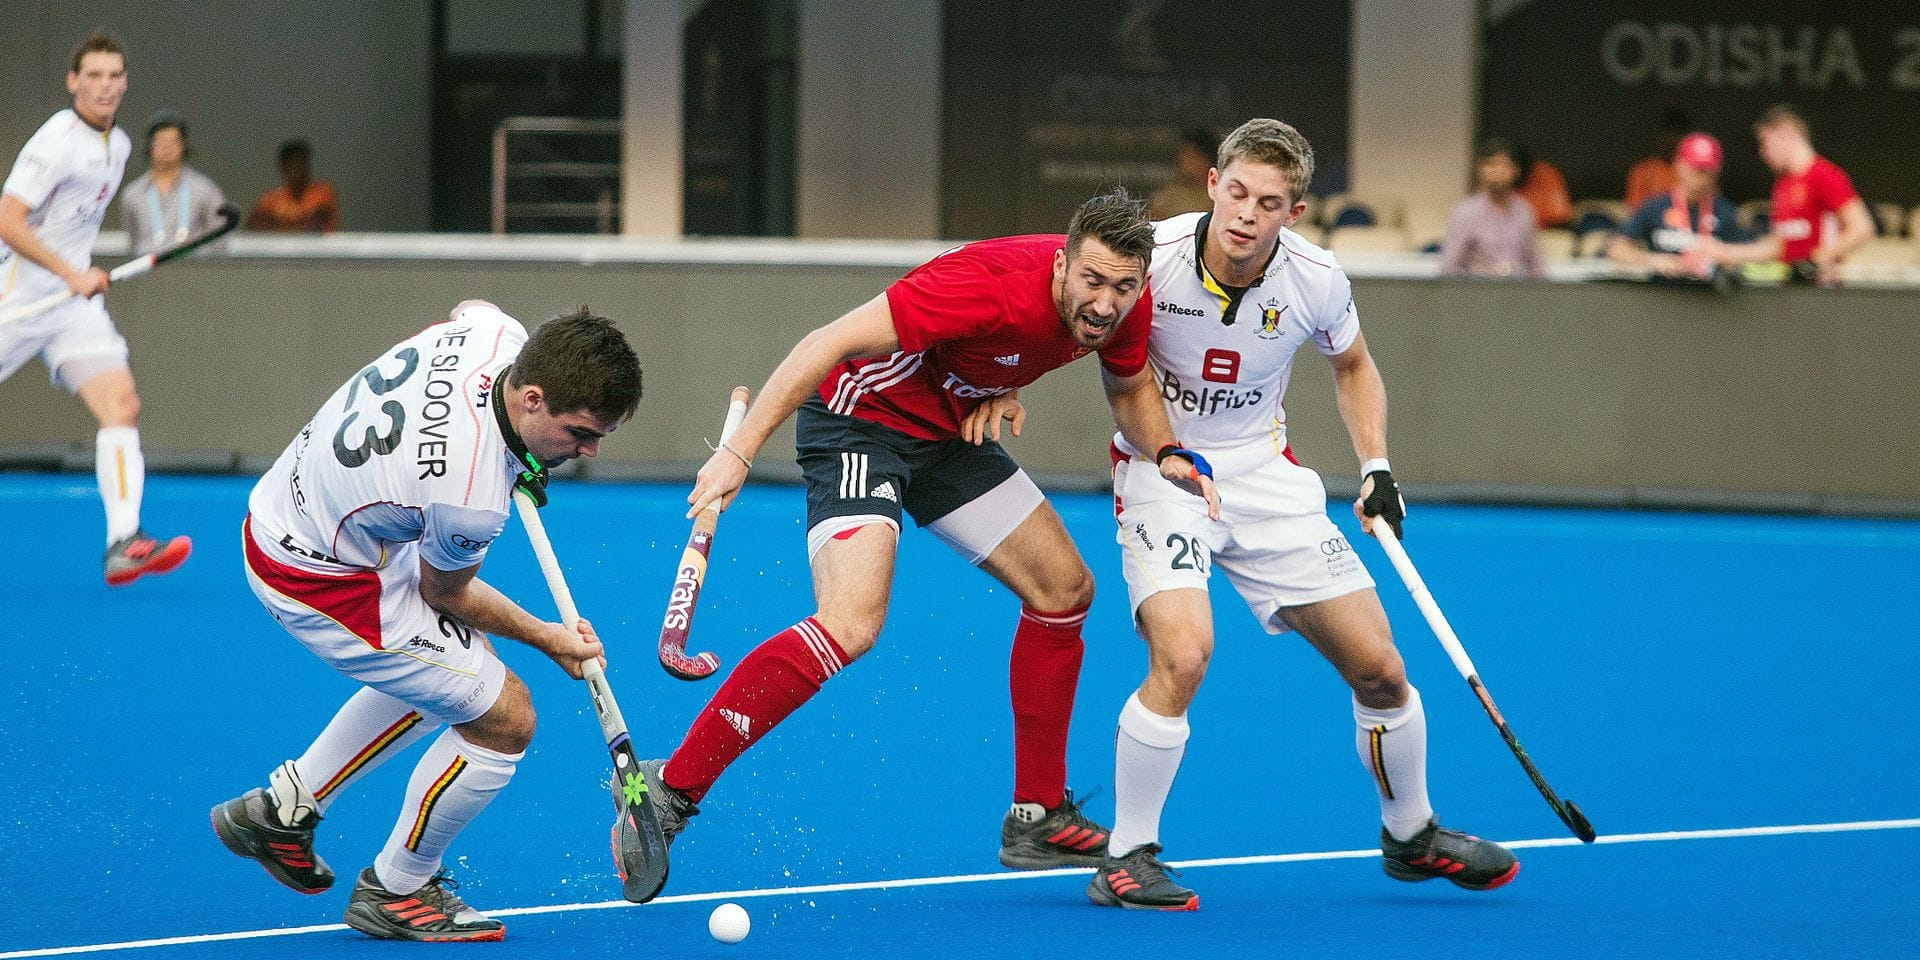 Belgium's Arthur De Sloover (L) and Belgium's Victor Wegnez (R) pictured in action during a game of Belgian national hockey team the Red Lions and England in the Kalinga Stadium in Bhubaneswar, India, at the hockey World Cup, Monday 26 November 2018. BELGA PHOTO DANIEL TECHY